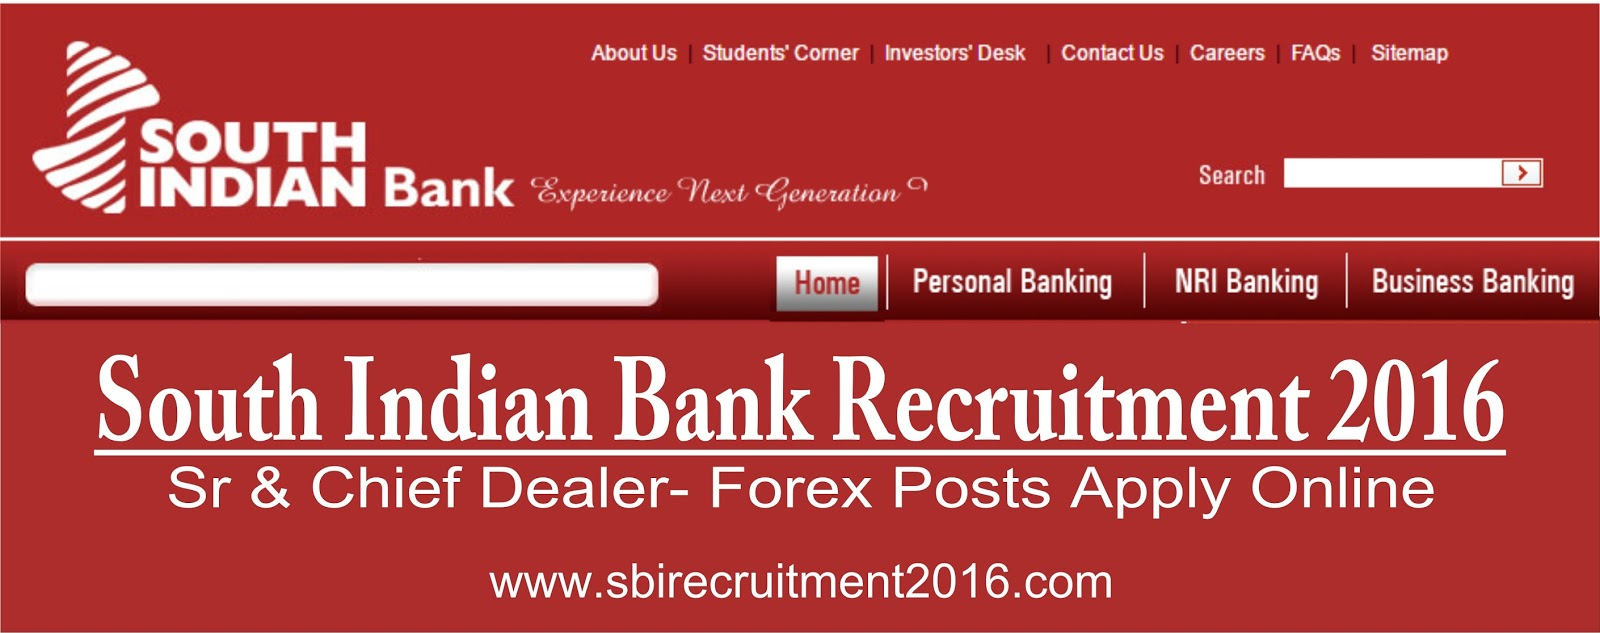 Forex dealer jobs in india